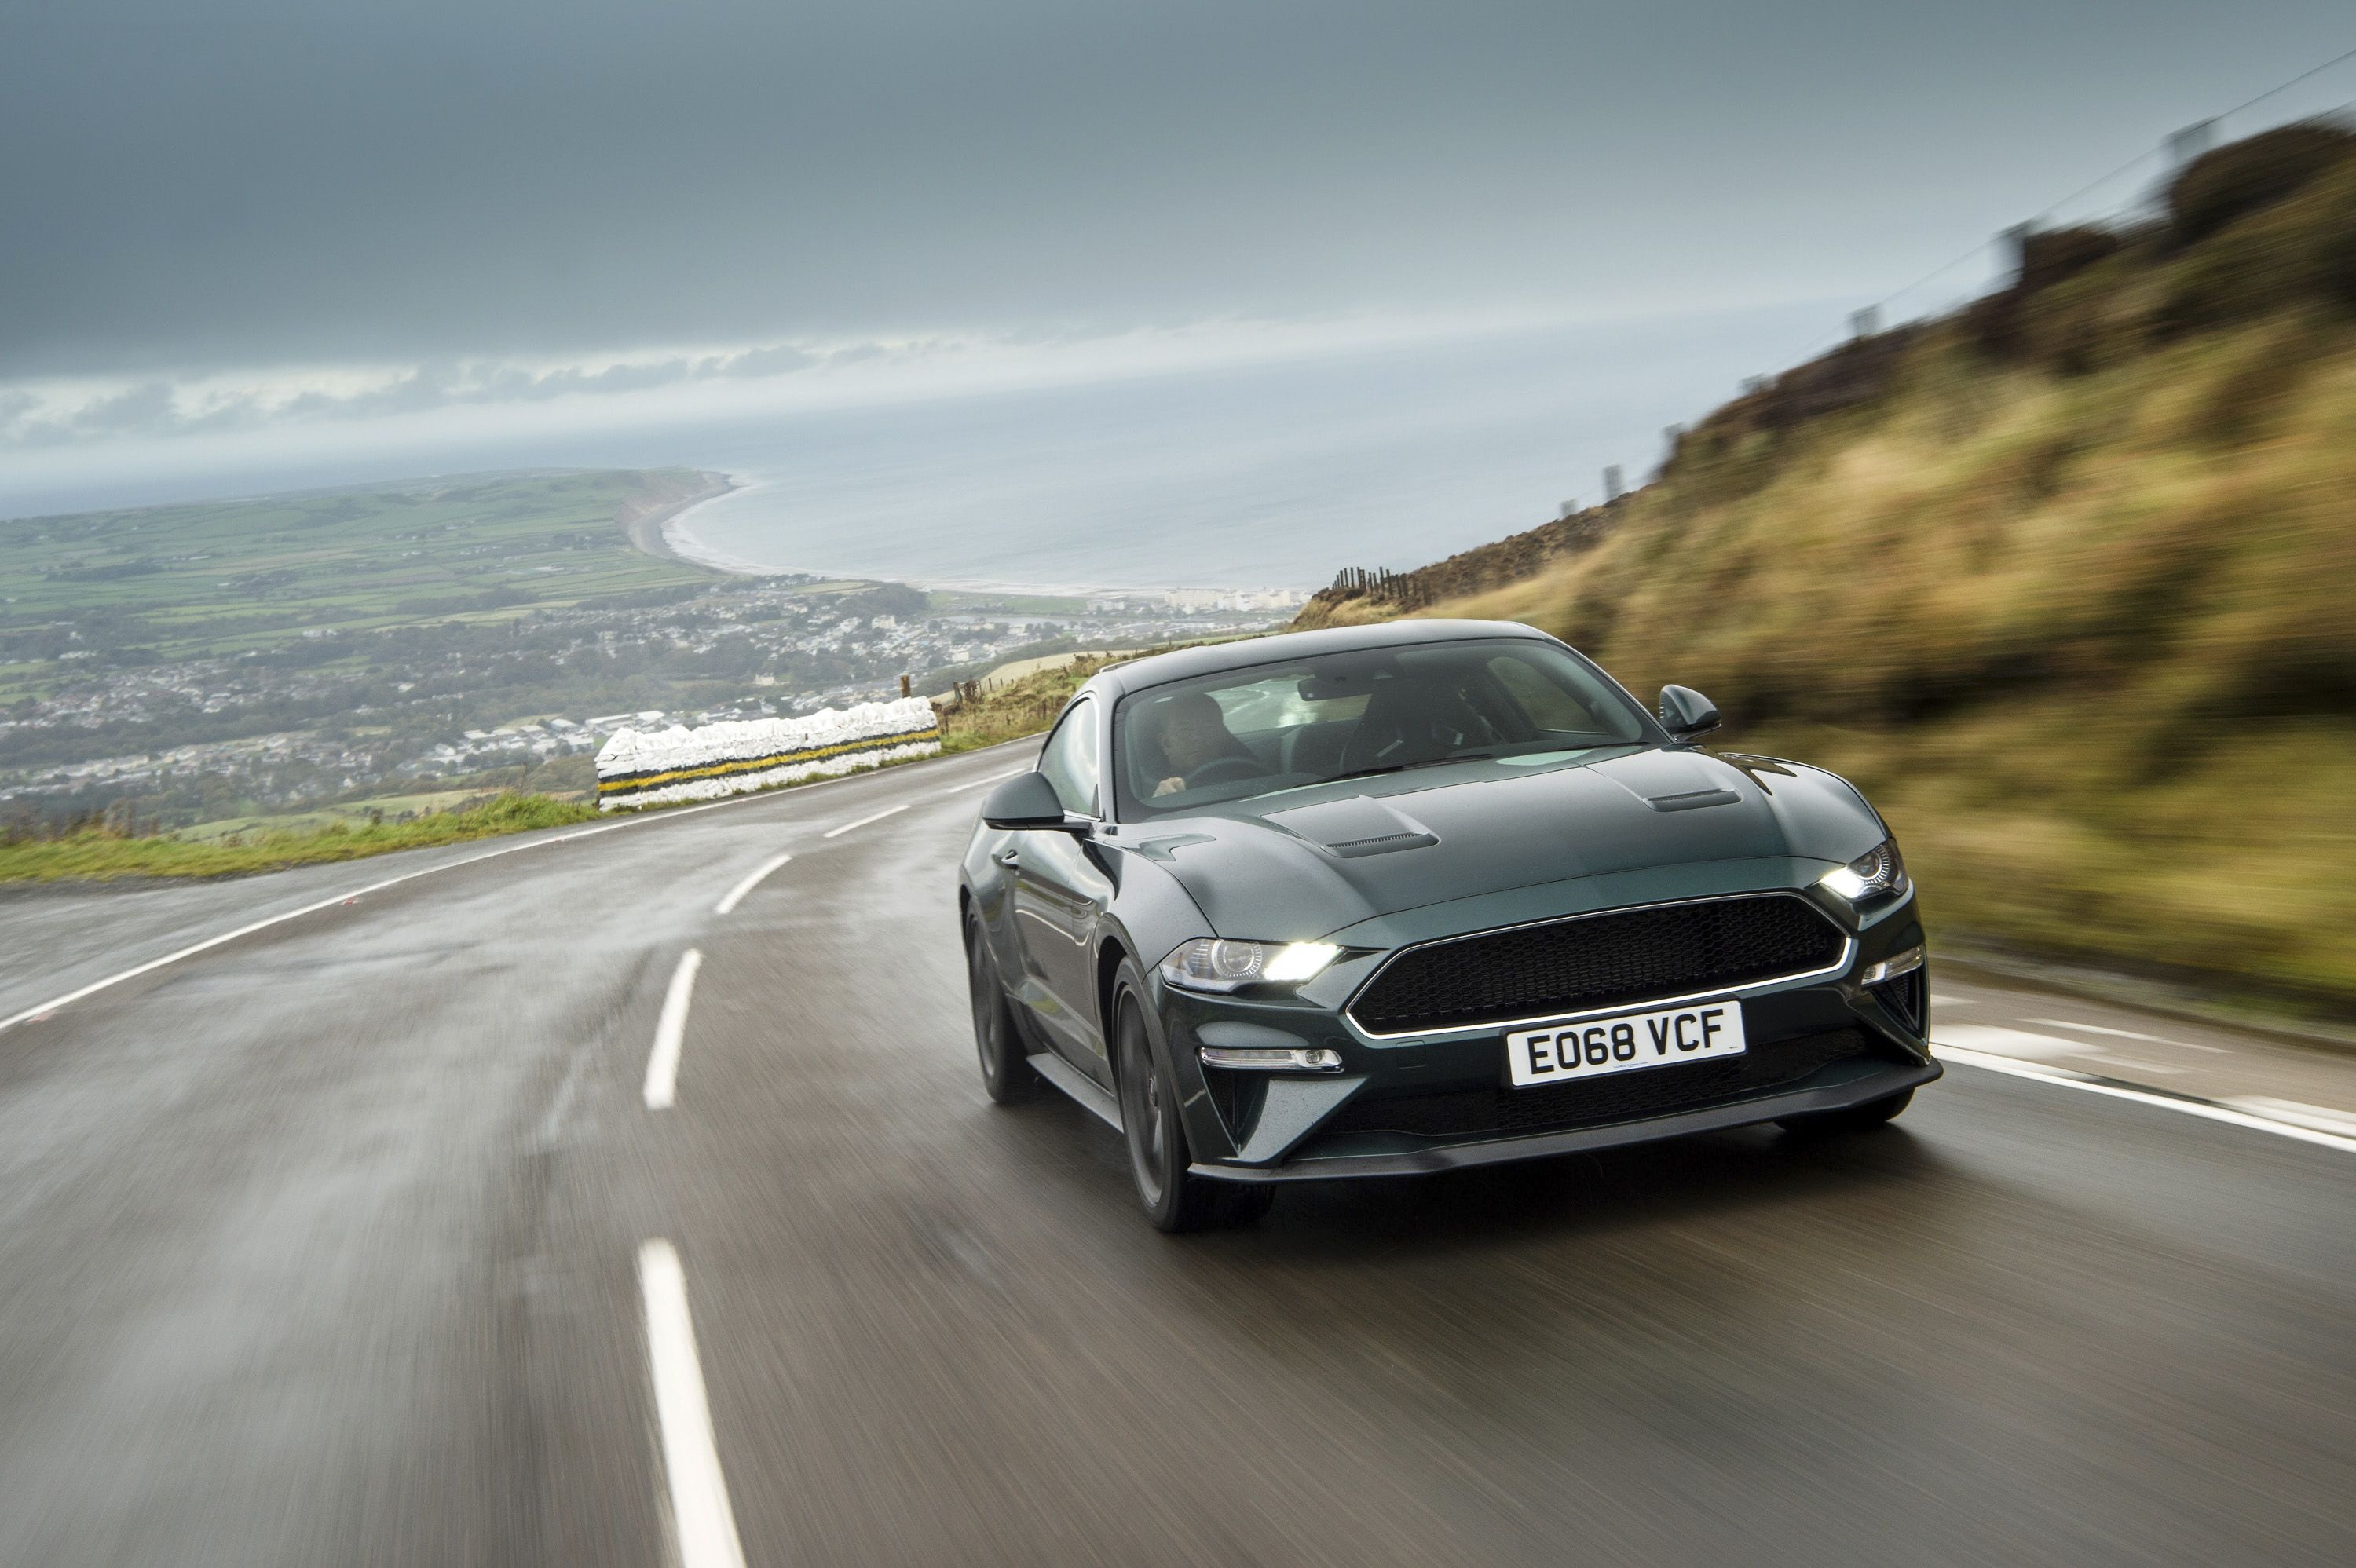 Watch A Ford Mustang Bullitt Rip Across The Isle Of Man Tt Course